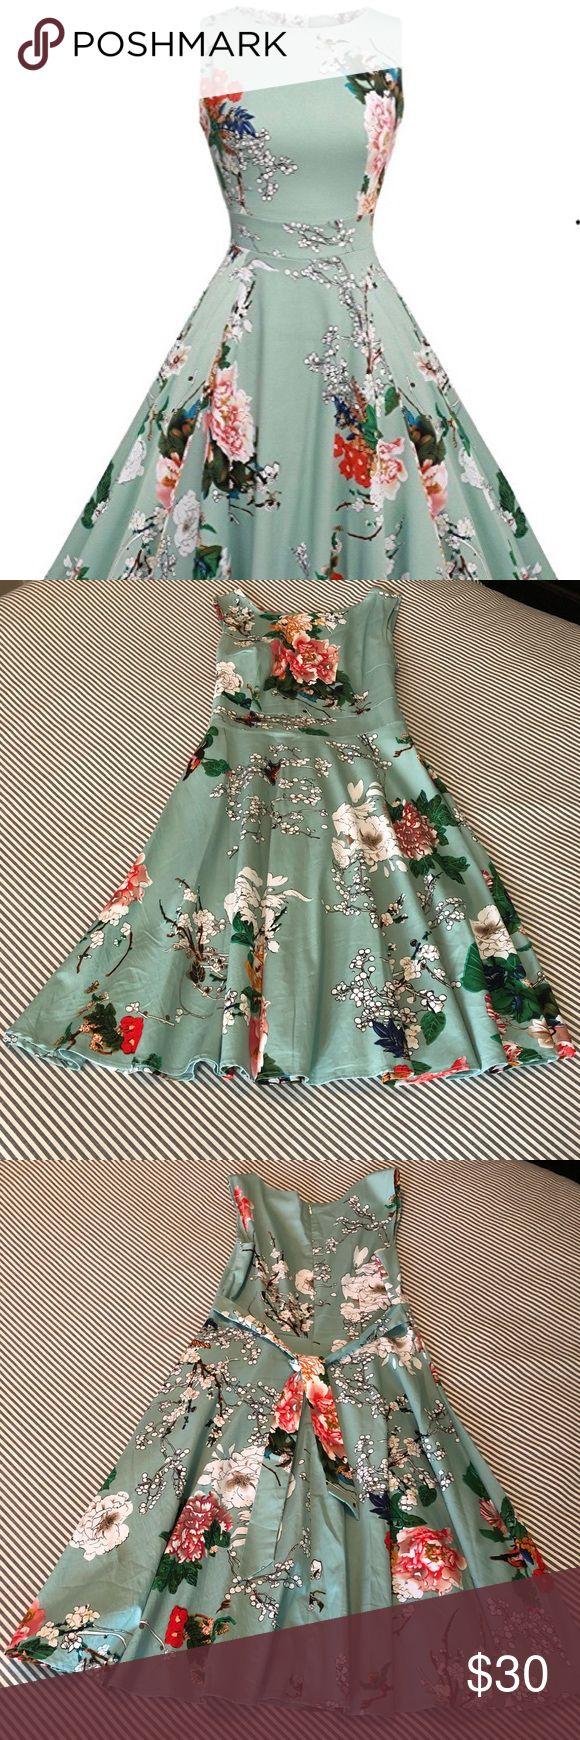 Vintage Classy Floral Sleeveless Party Dress This vintage classic floral Aranee …